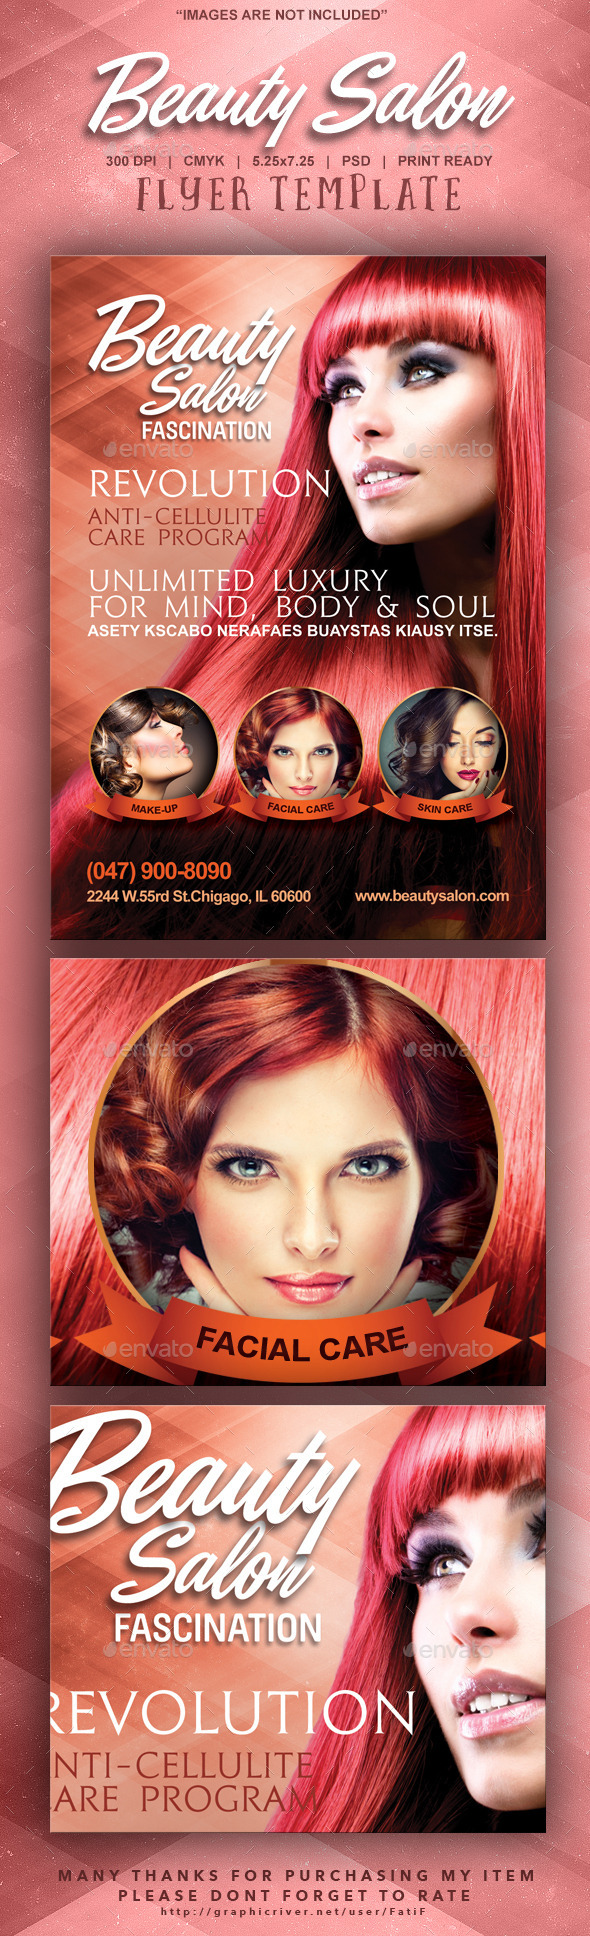 Beauty Salon Flyer Template - Corporate Flyers